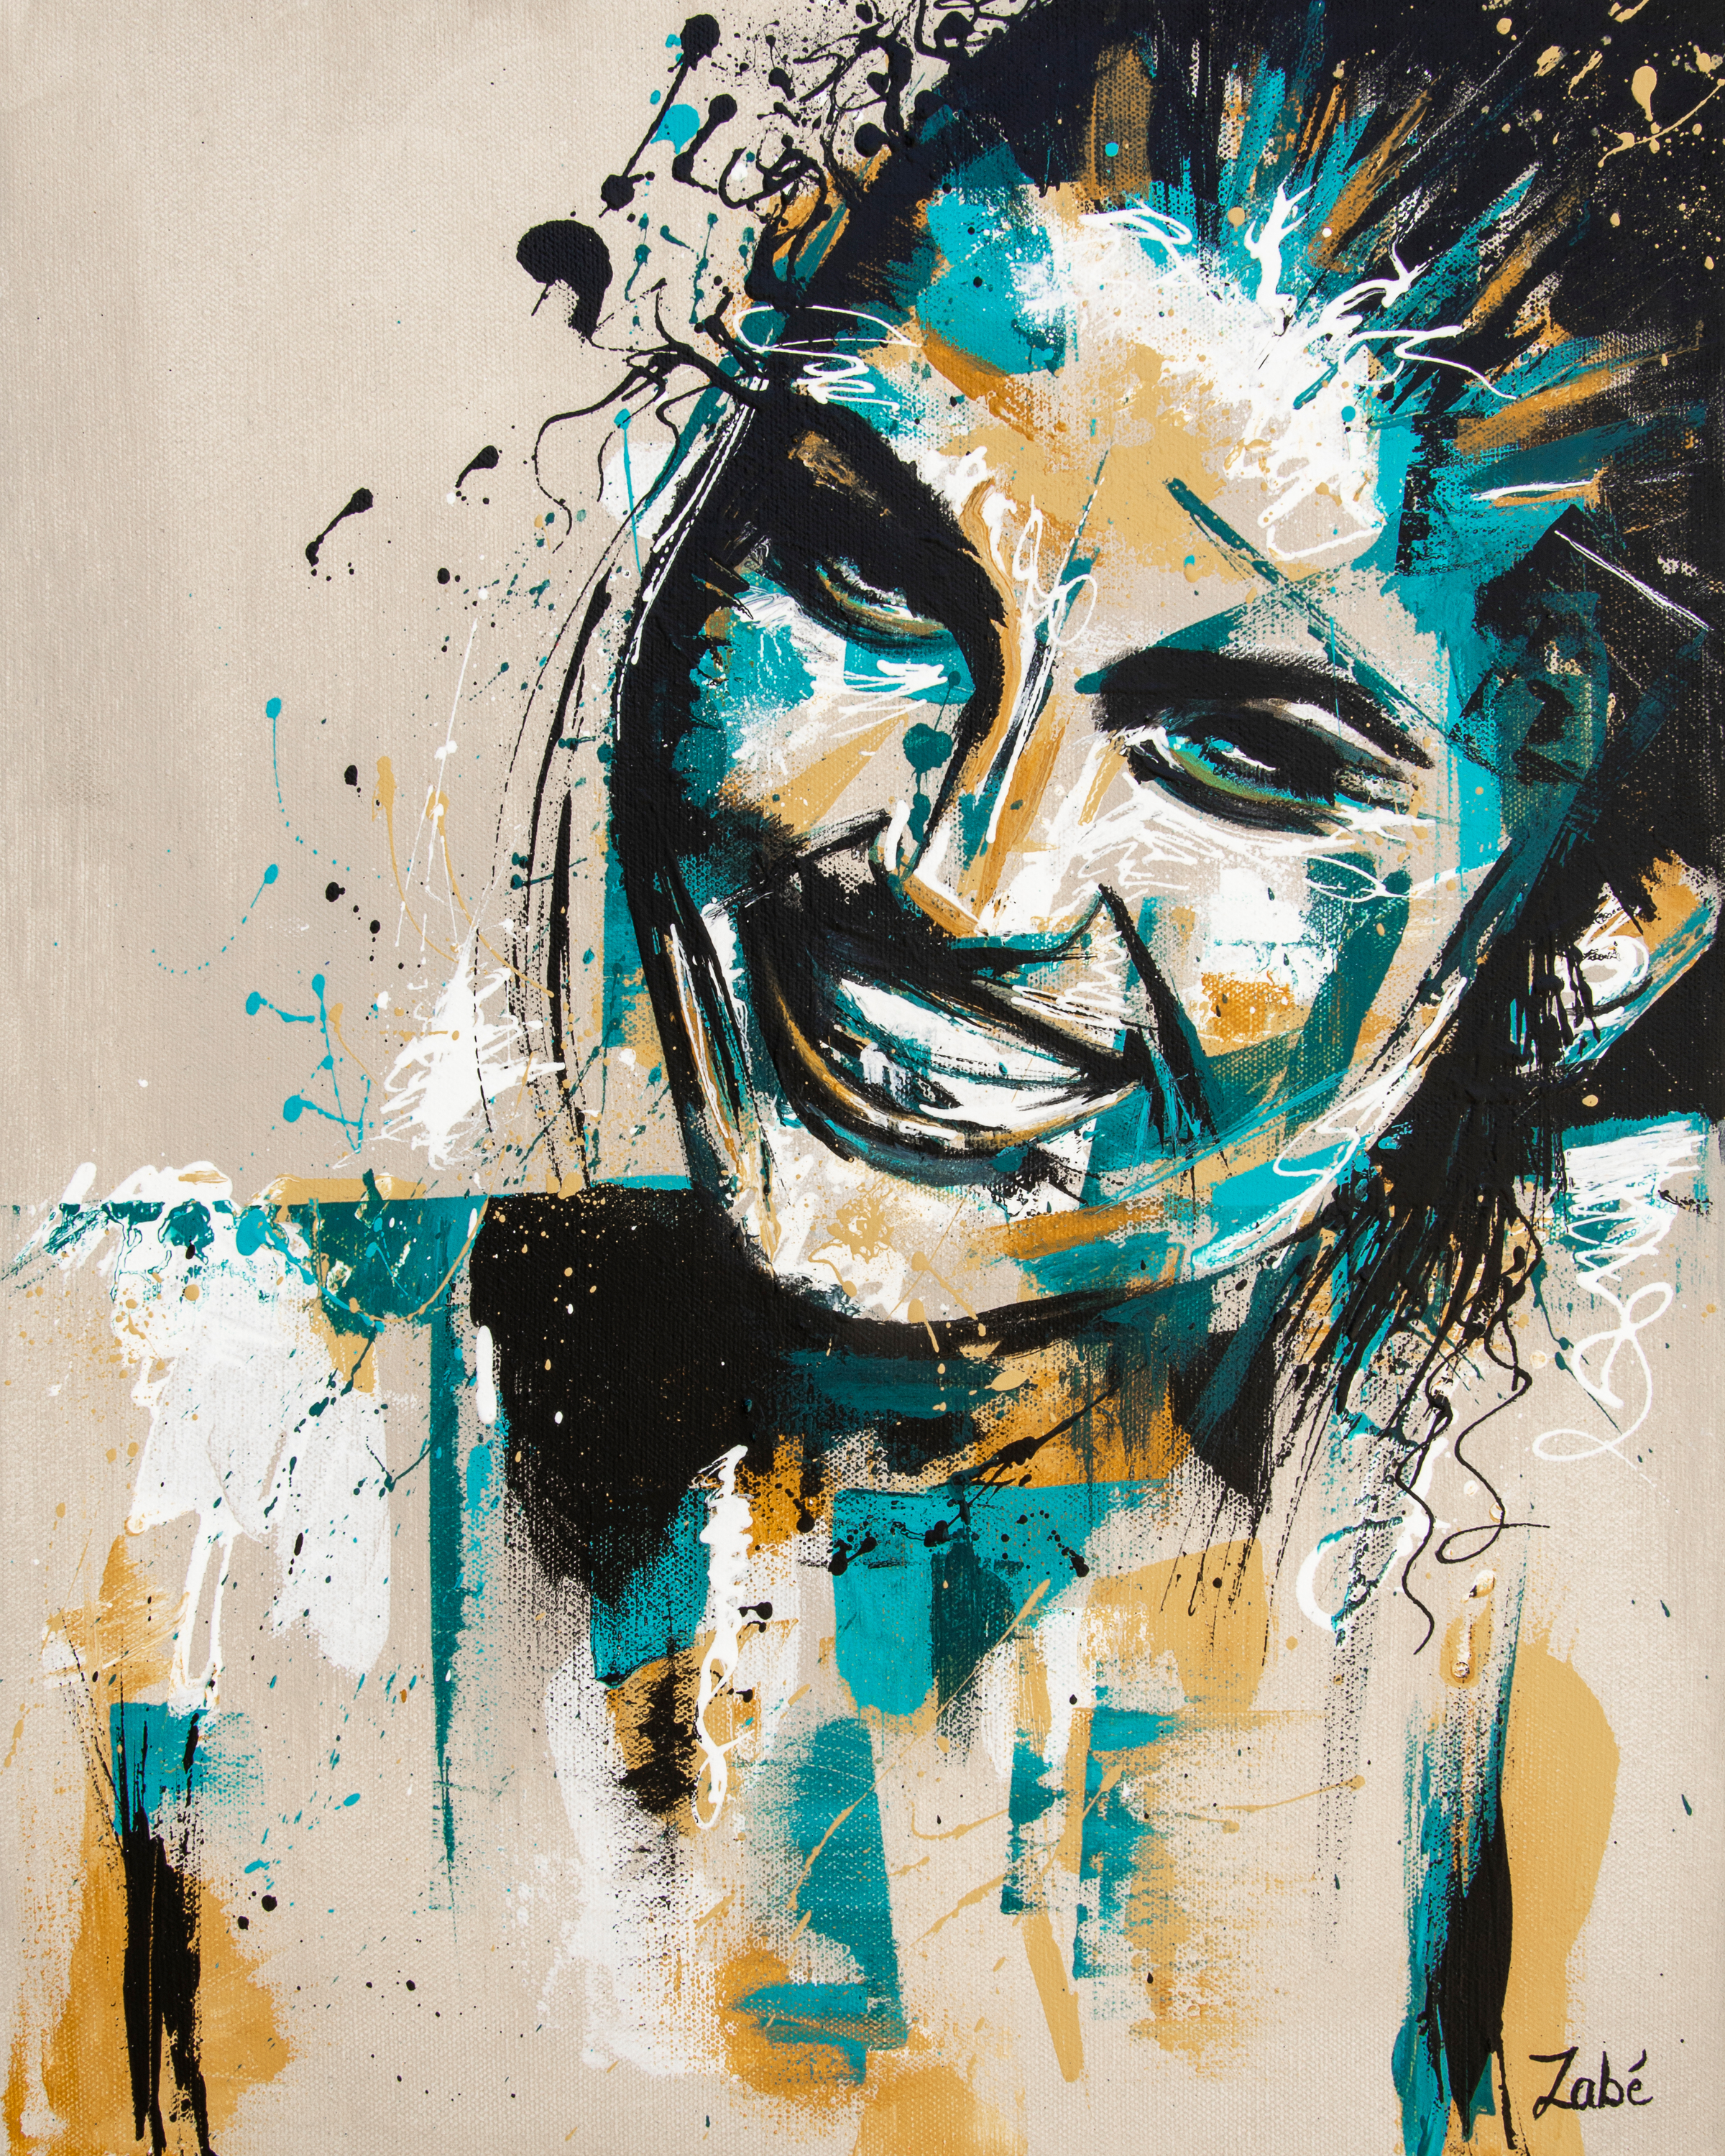 16x20 zabe arts green smile portrait painting uihp2r